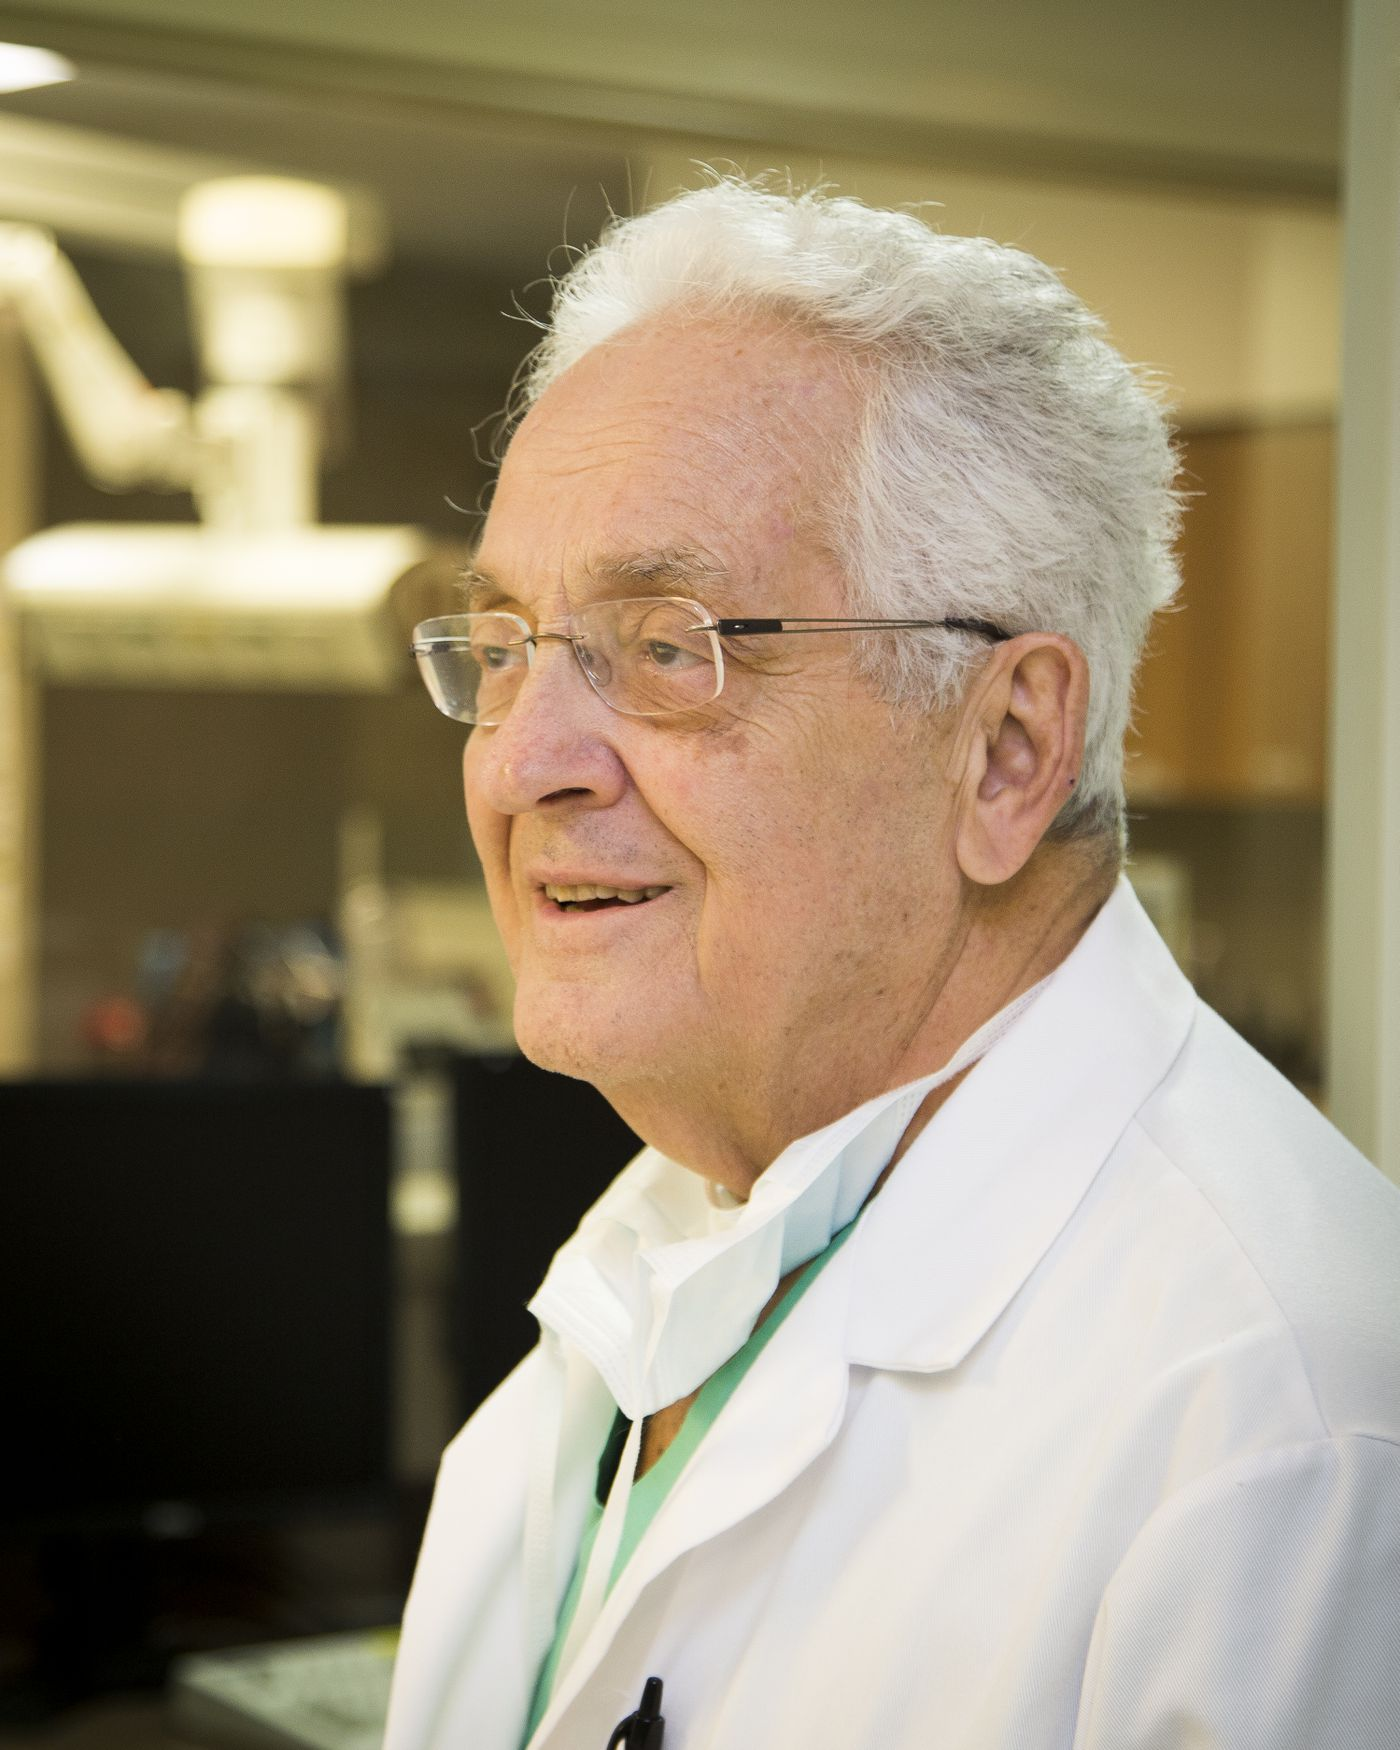 More doctors are practicing past age 70  Is that safe for